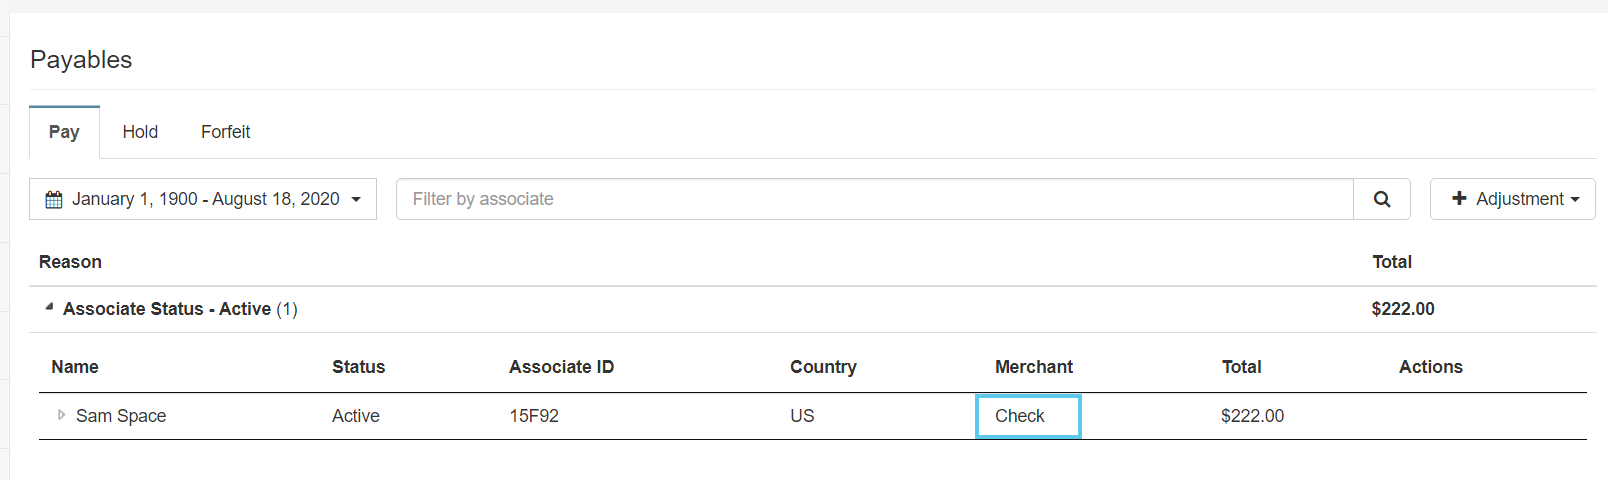 Added adjustment with Check provider